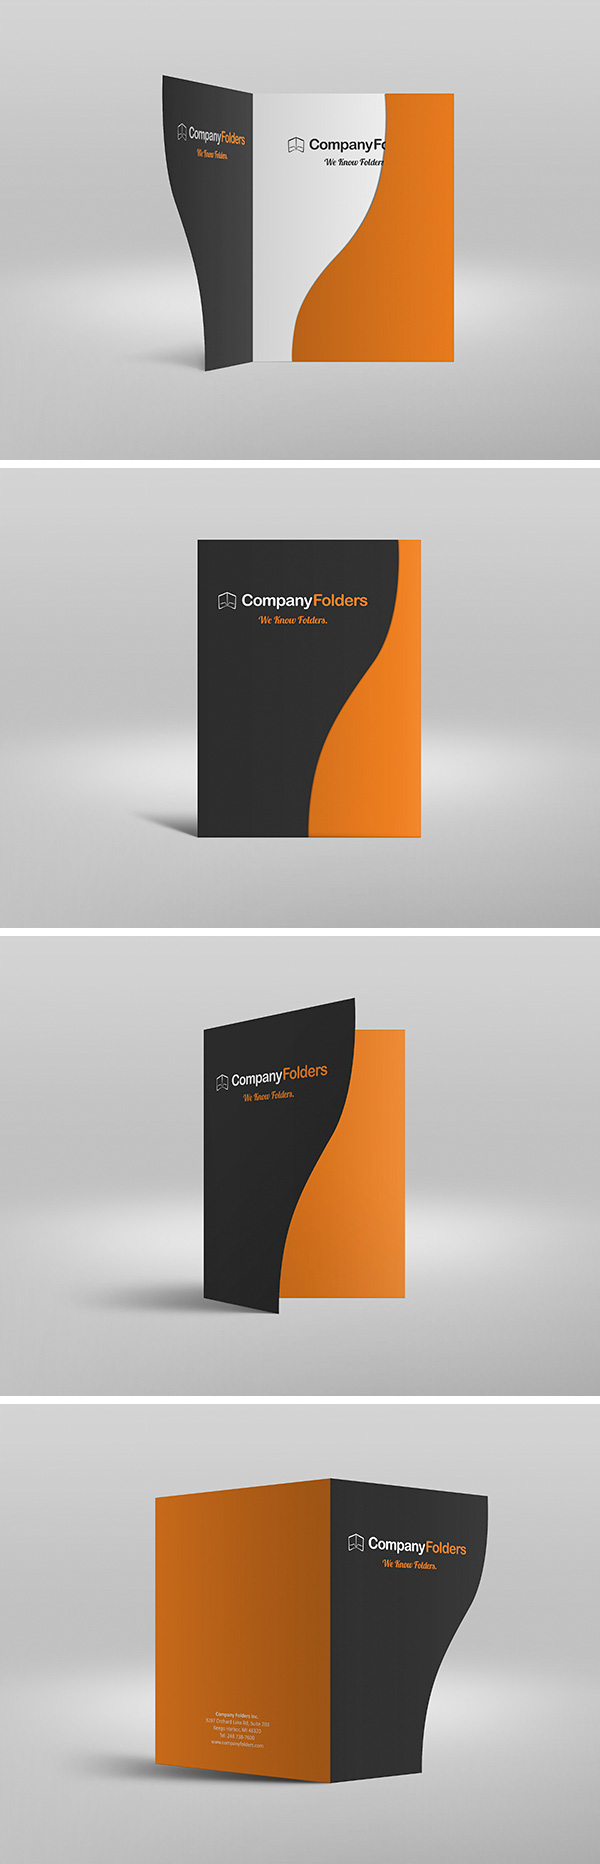 What Is A Graphic Design Thesis